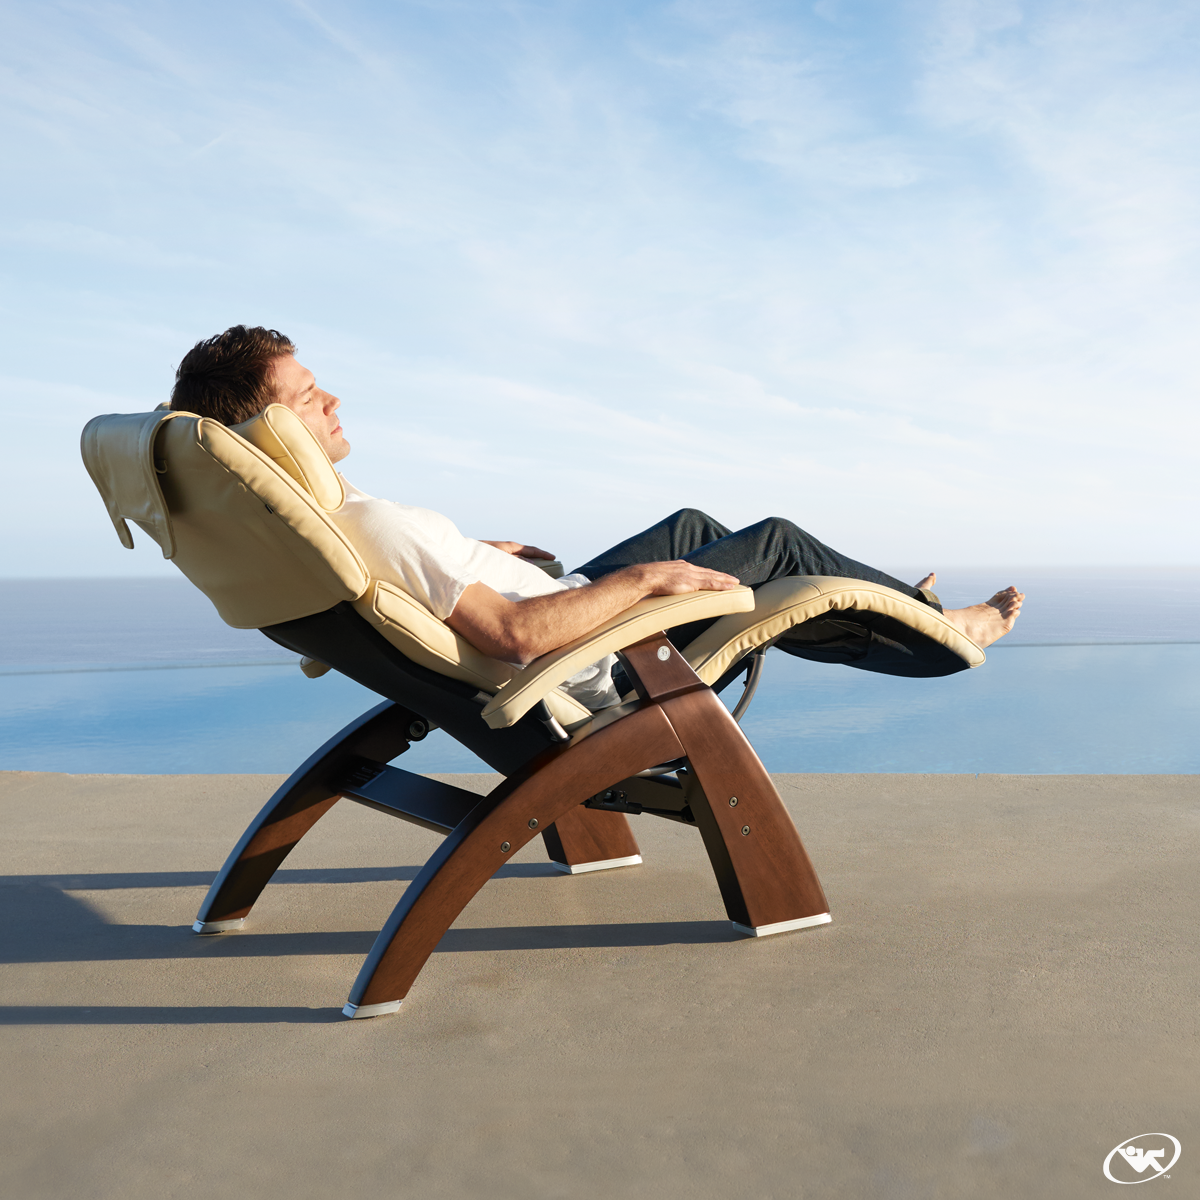 Effortlessly transport to weightless bliss when you sit in the human